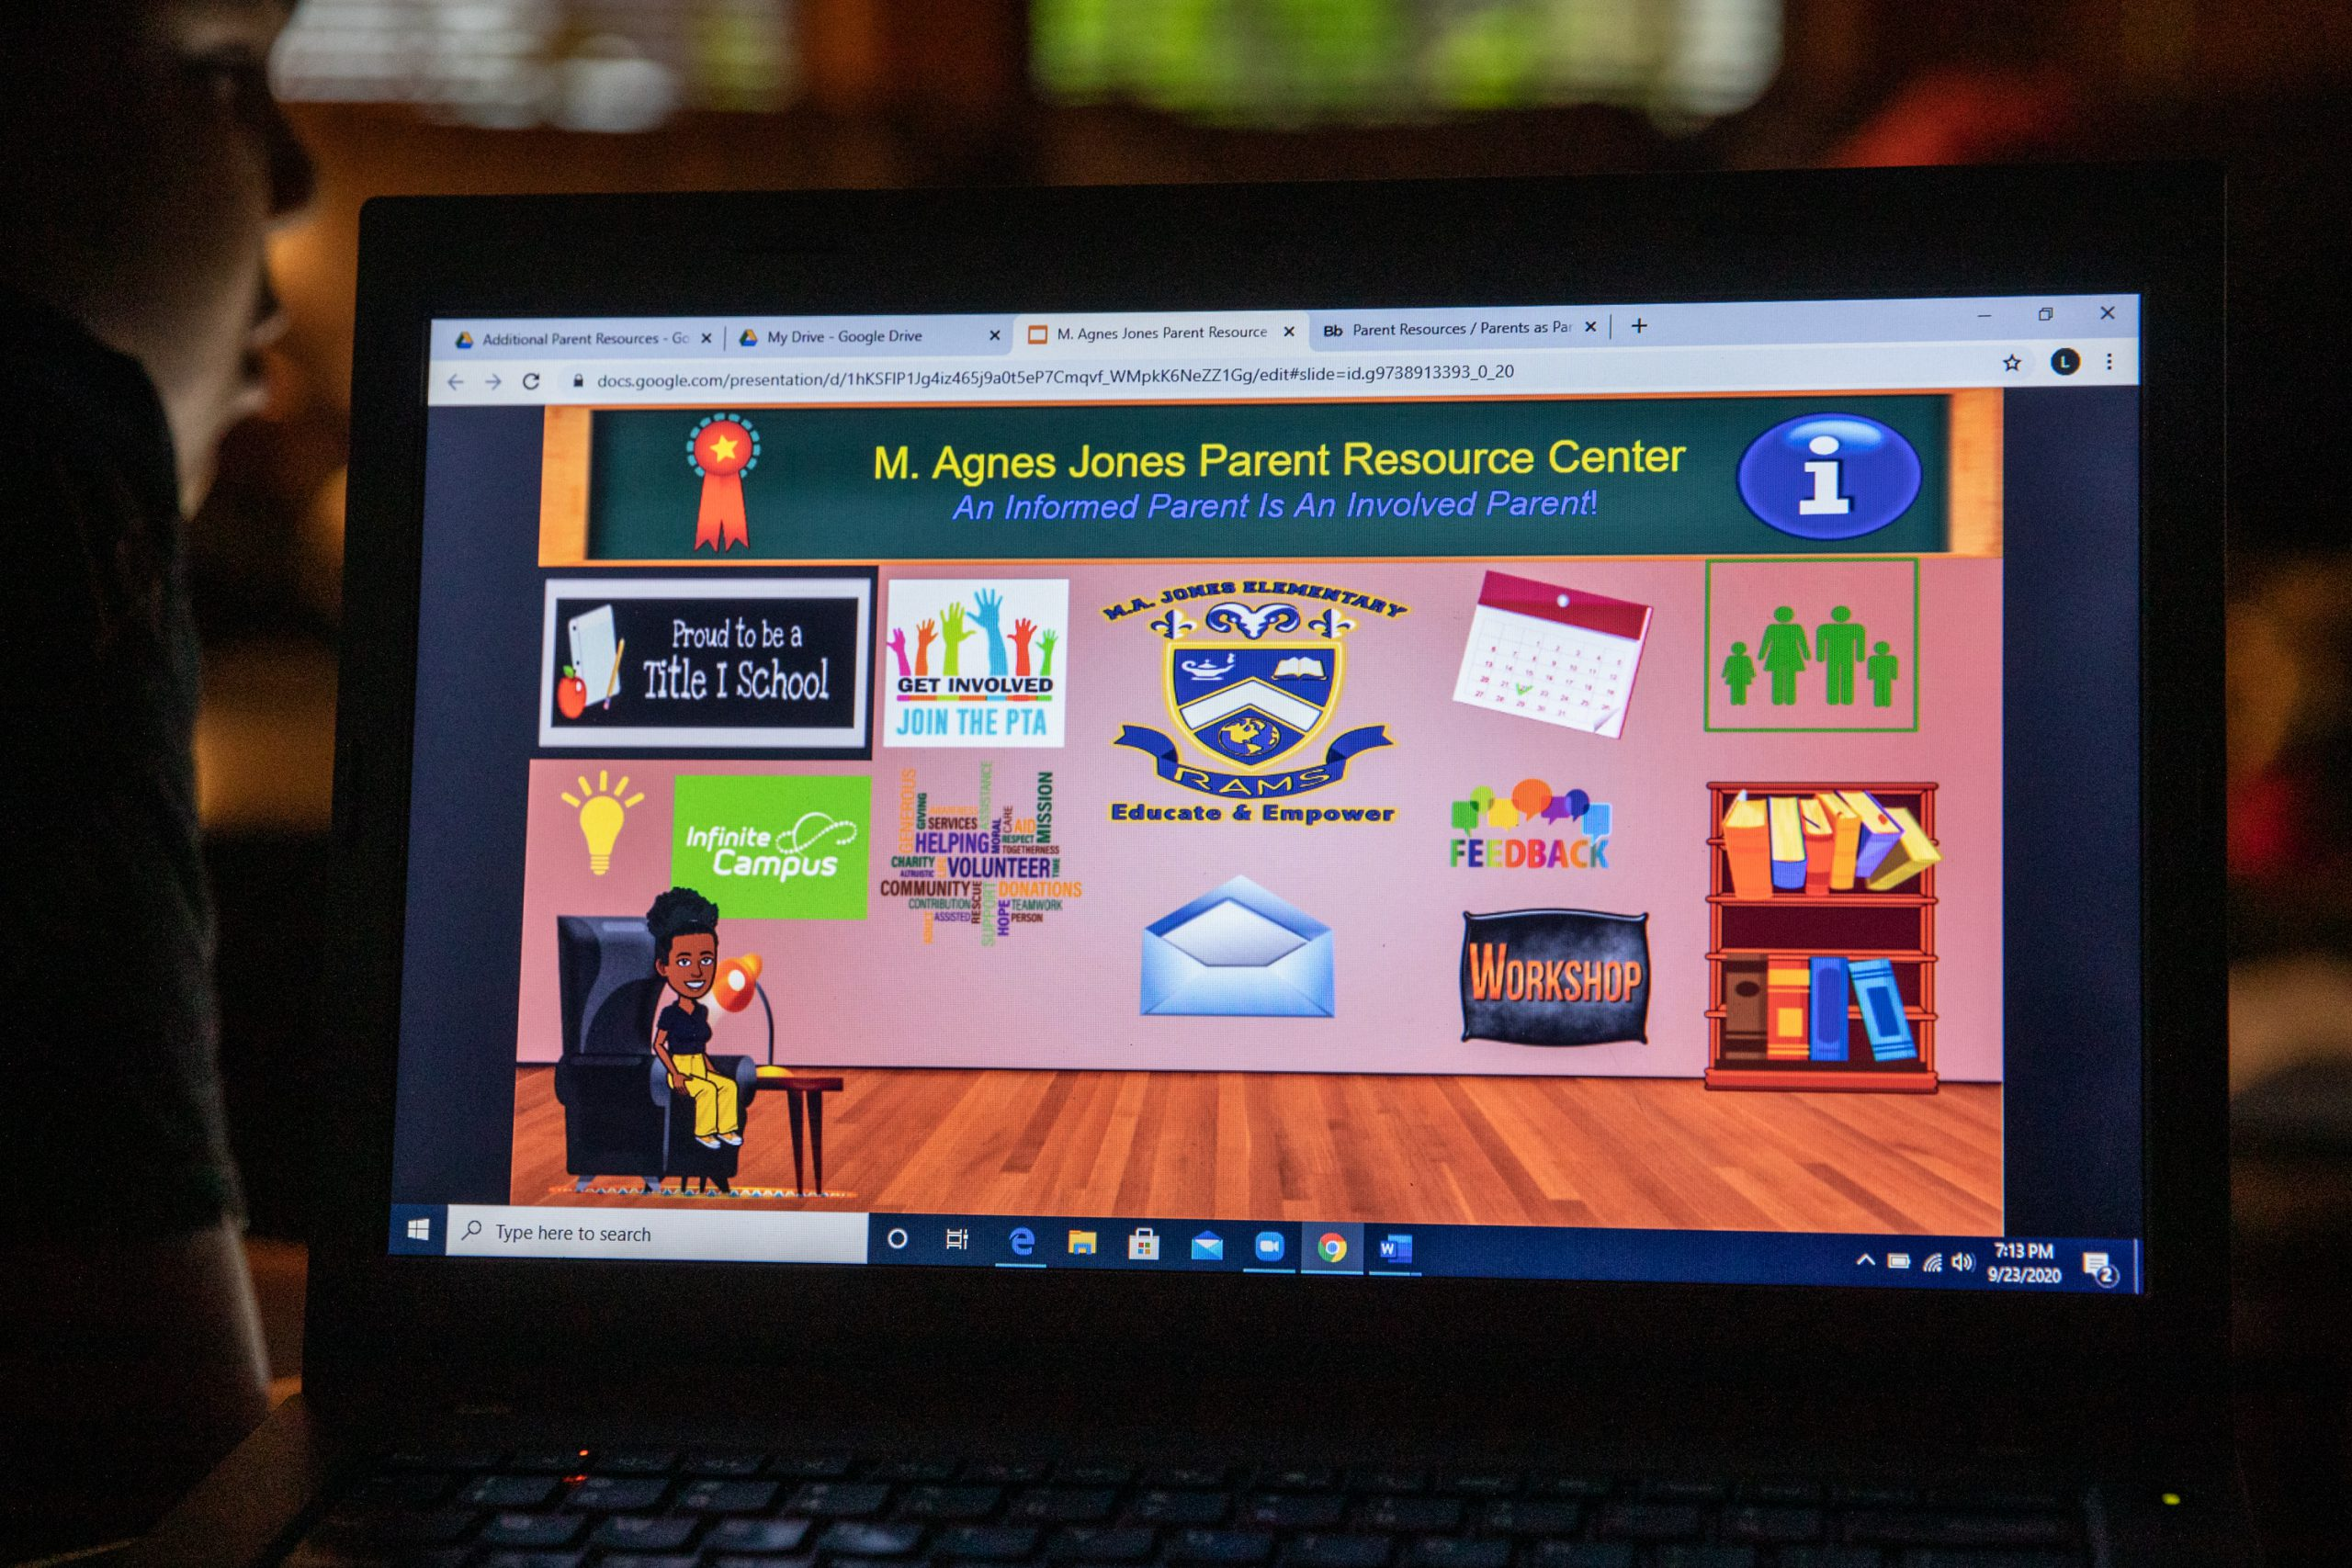 A laptop shows an animated parent resource center